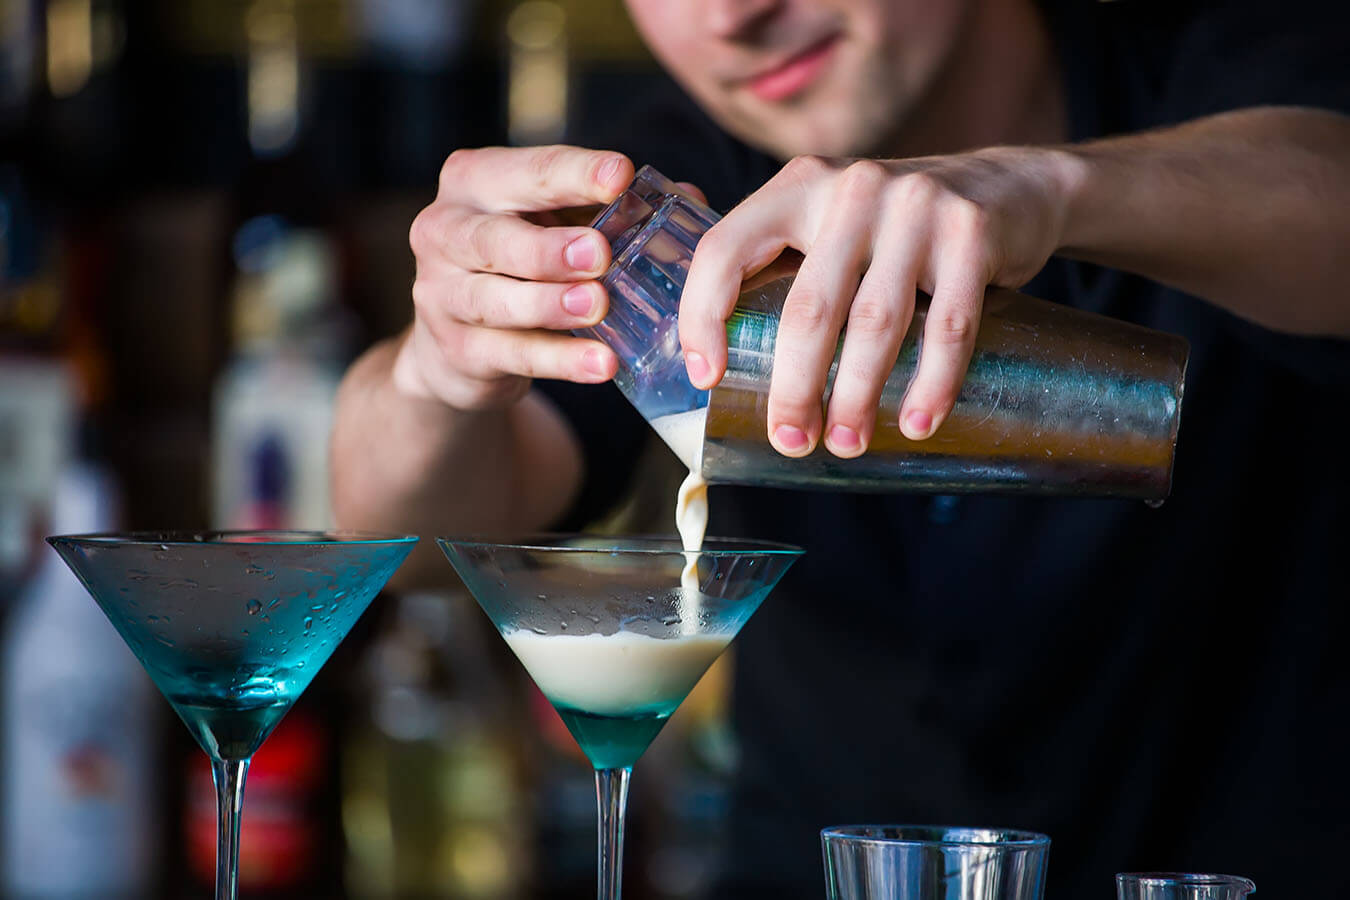 The bartender mixes a summer cocktail at the bar